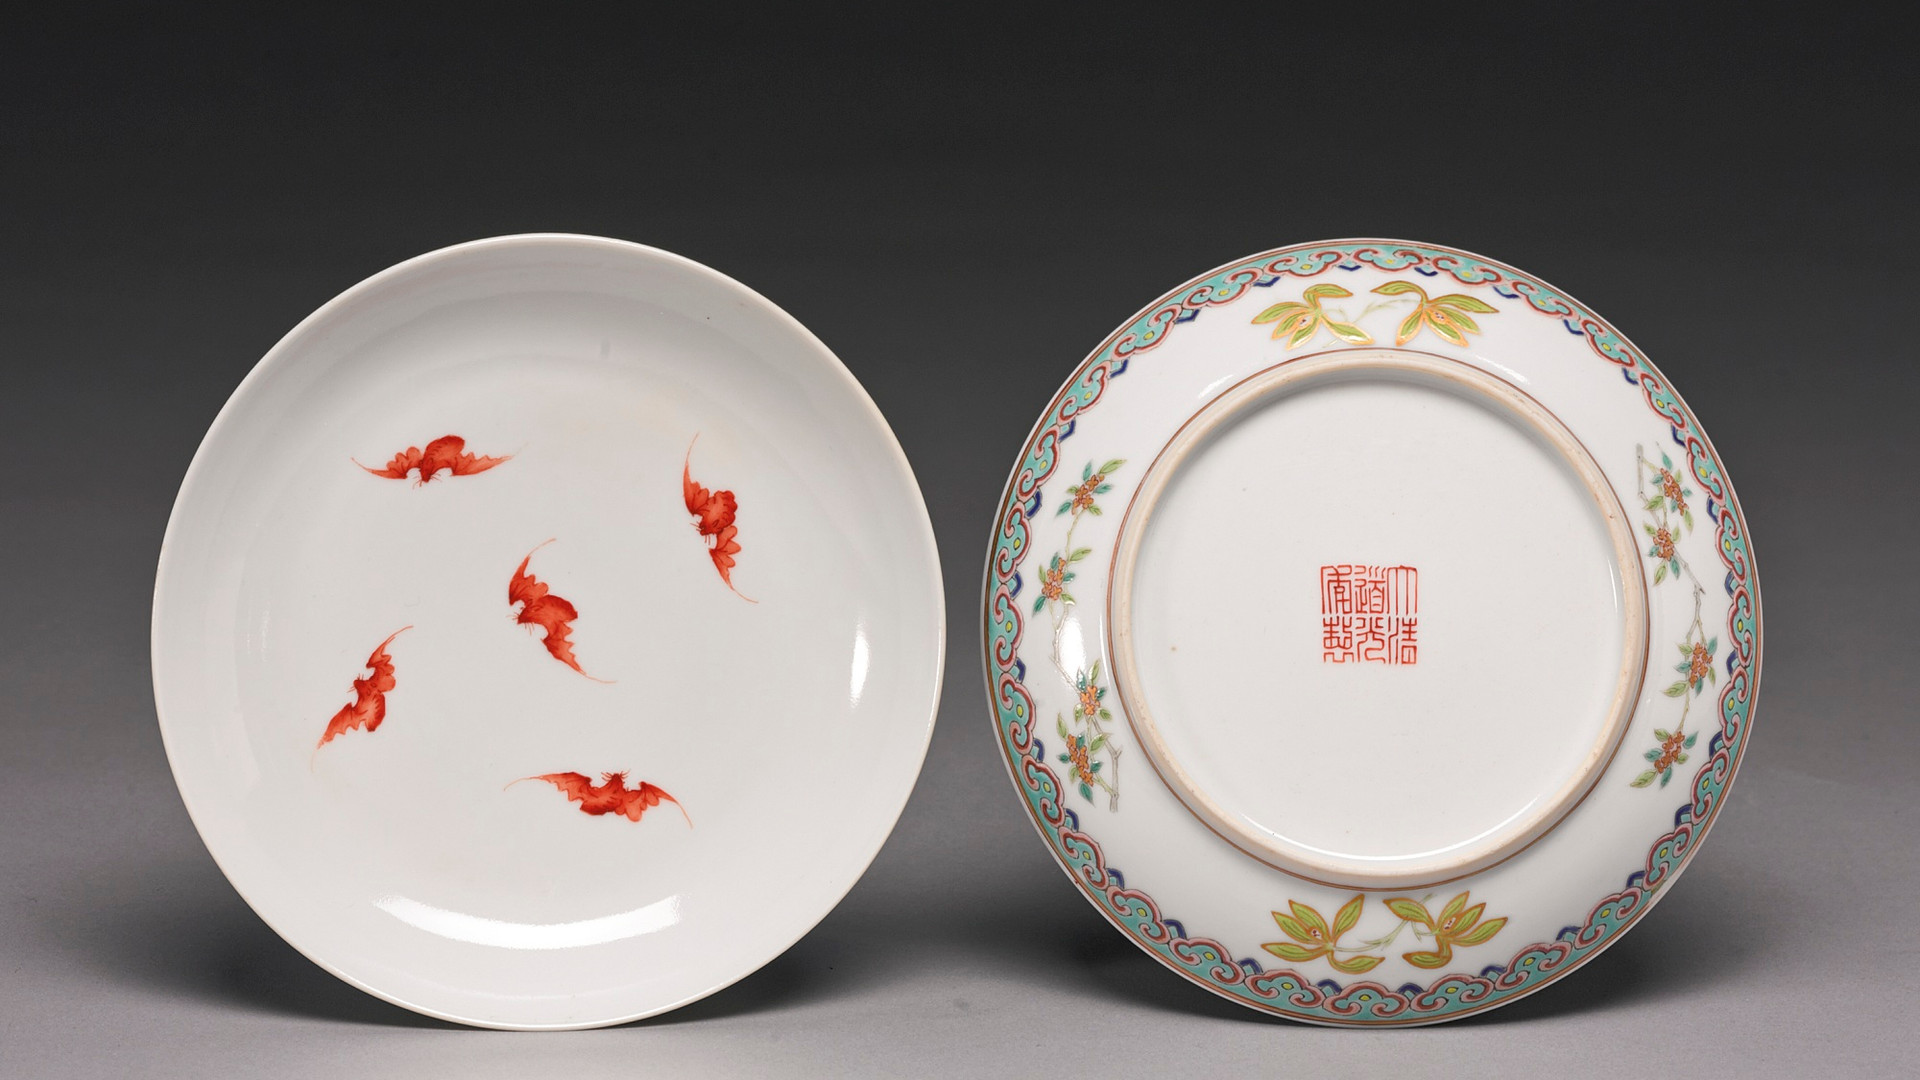 Antique Wufu China Plates